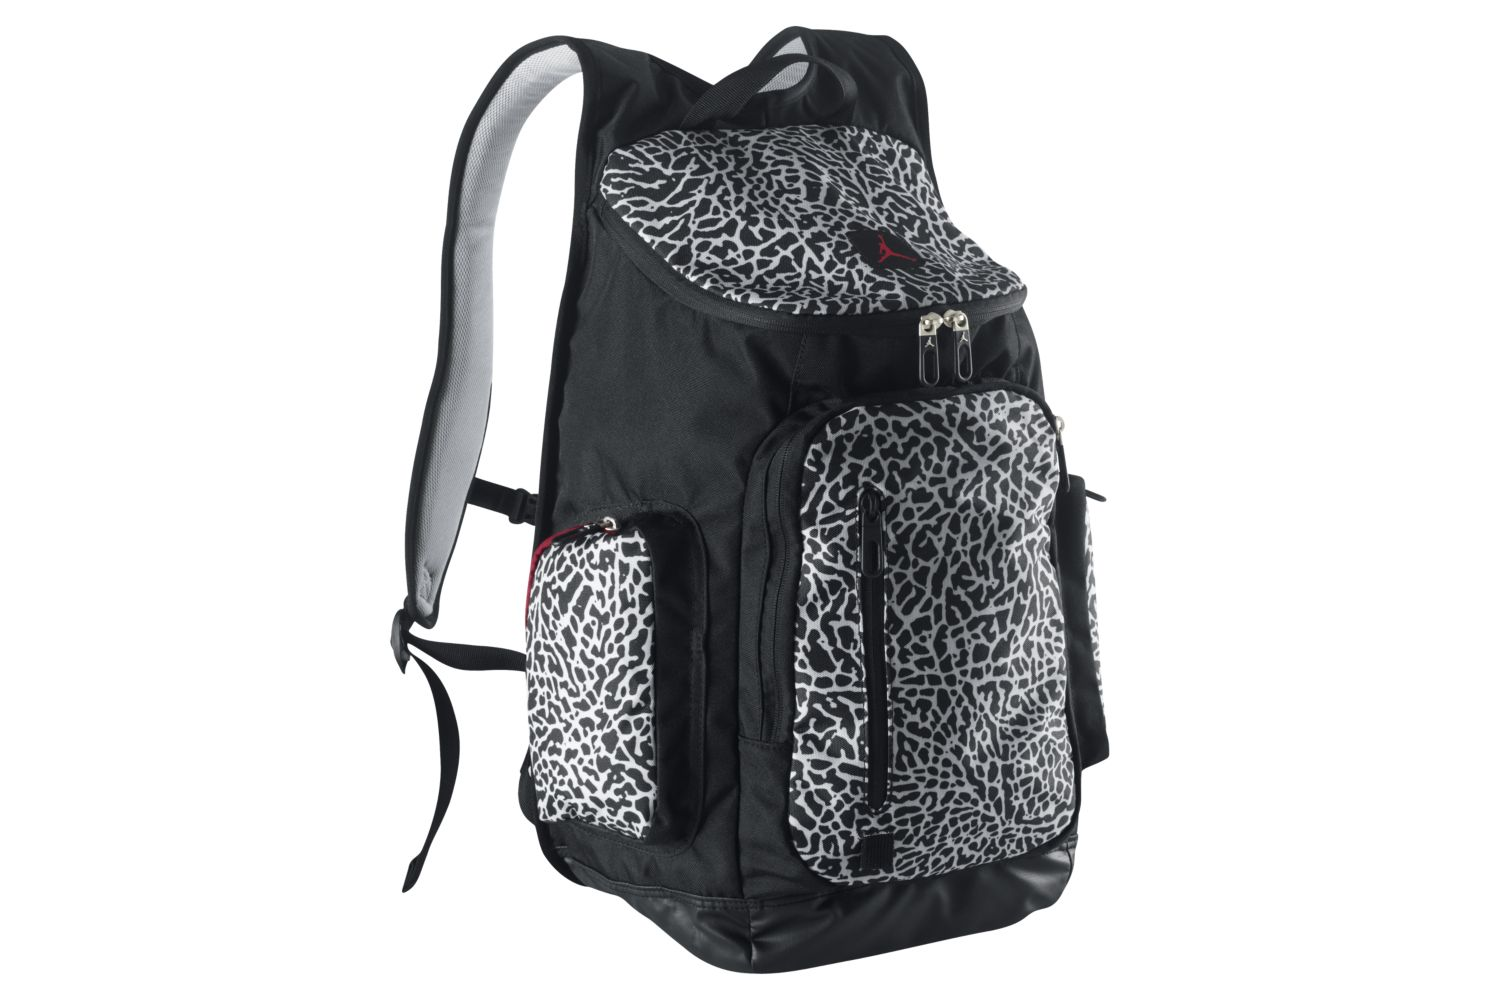 73c3142c6dfb Buy air jordan backpacks on sale   up to 49% Discounts